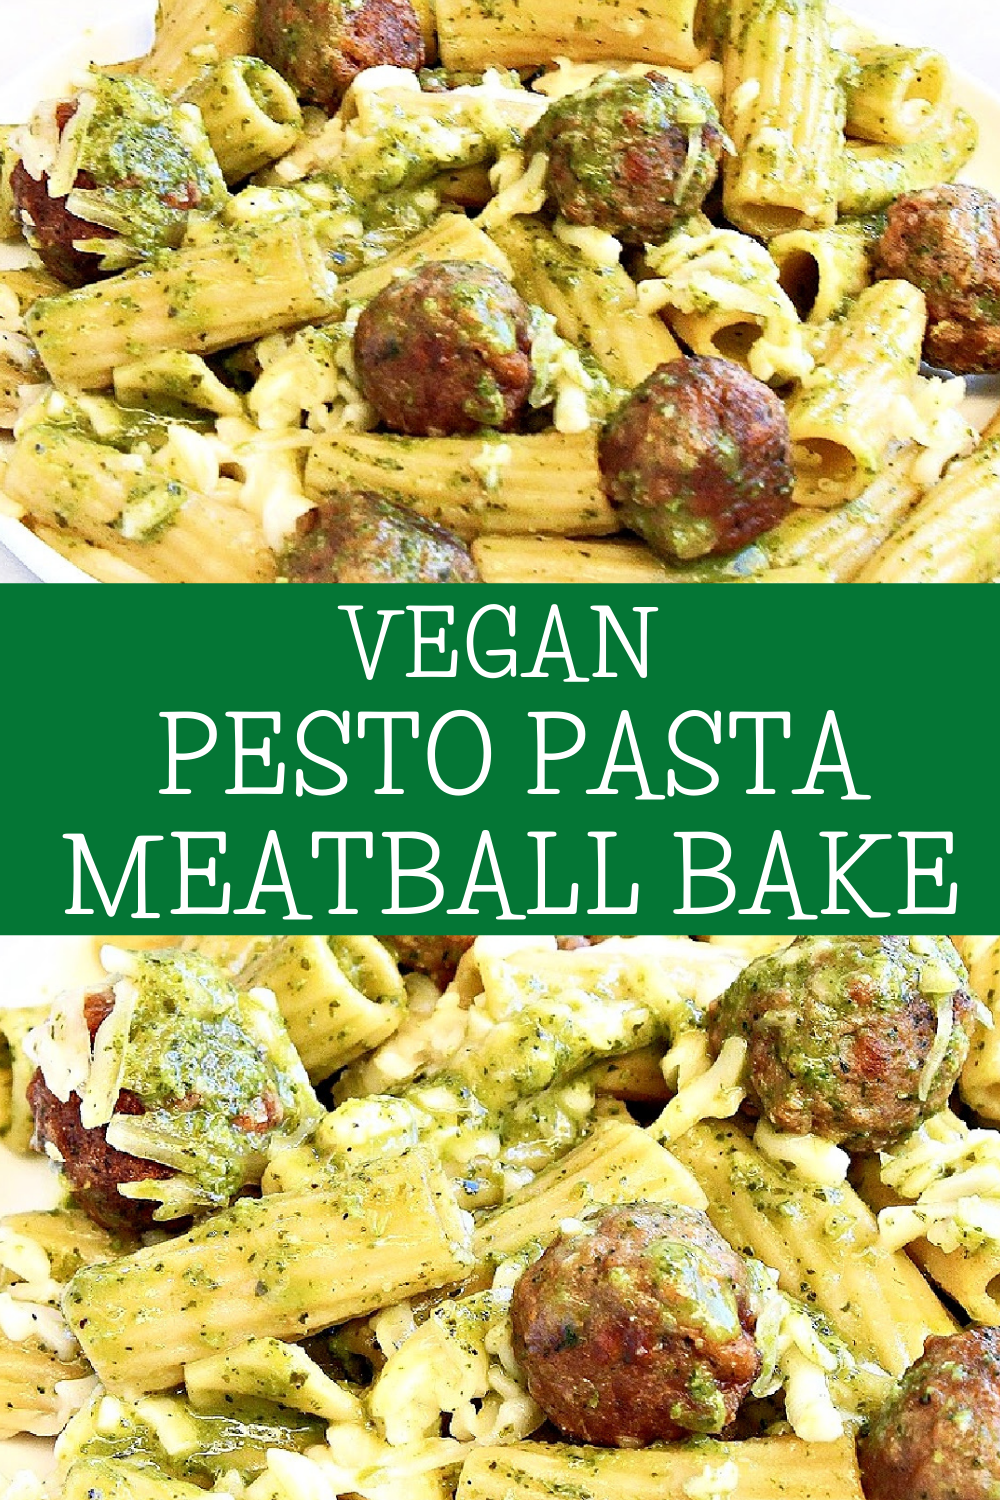 Vegan Pesto Pasta Meatball Bake ~ Six ingredients are all you need for this simple and comforting, plant-based weeknight dinner! via @thiswifecooks